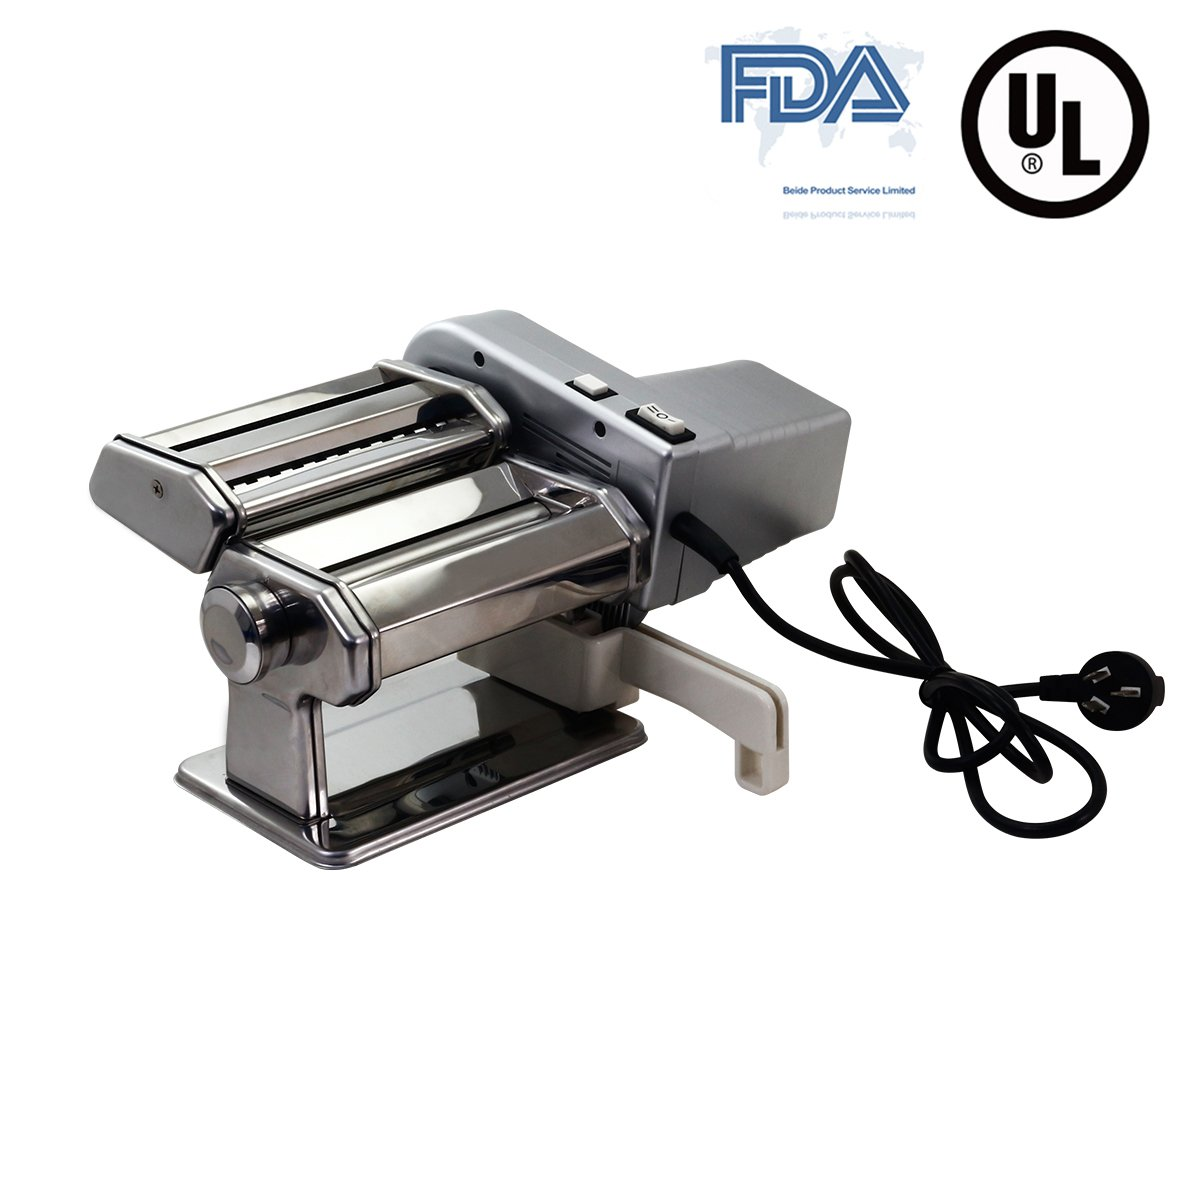 Yunko Electric Pasta Maker Machine with Motor Set Stainless Steel Pasta Roller Machine For Homemade Lasagne Fettuccine Tagliolini Dismountable Cutter Silver